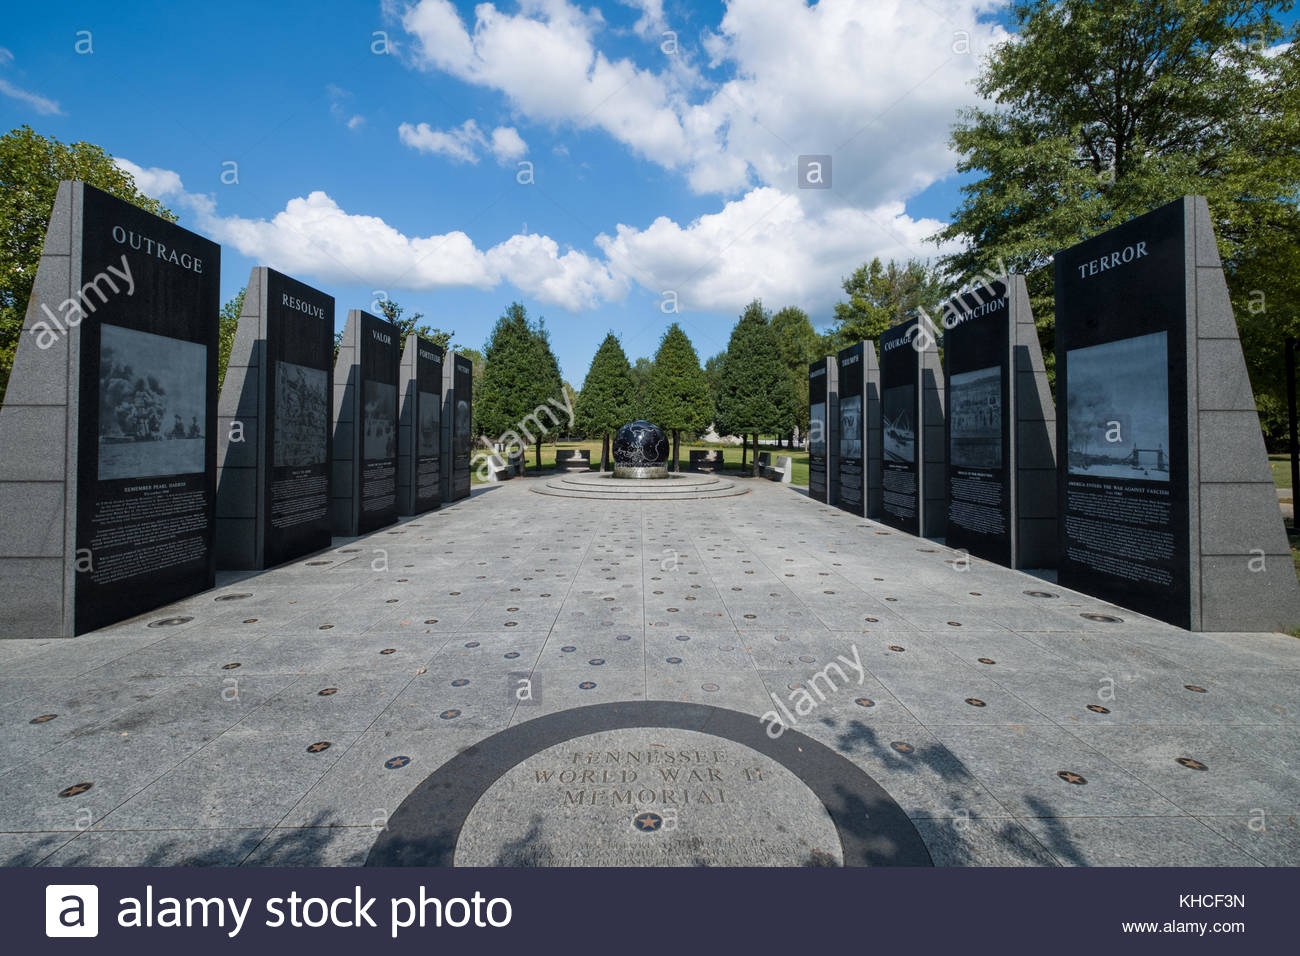 World War II Memorial, Bicentennial Capitol Mall State Park, Nashville, Davidson County, Tennessee, USA Stock Photo